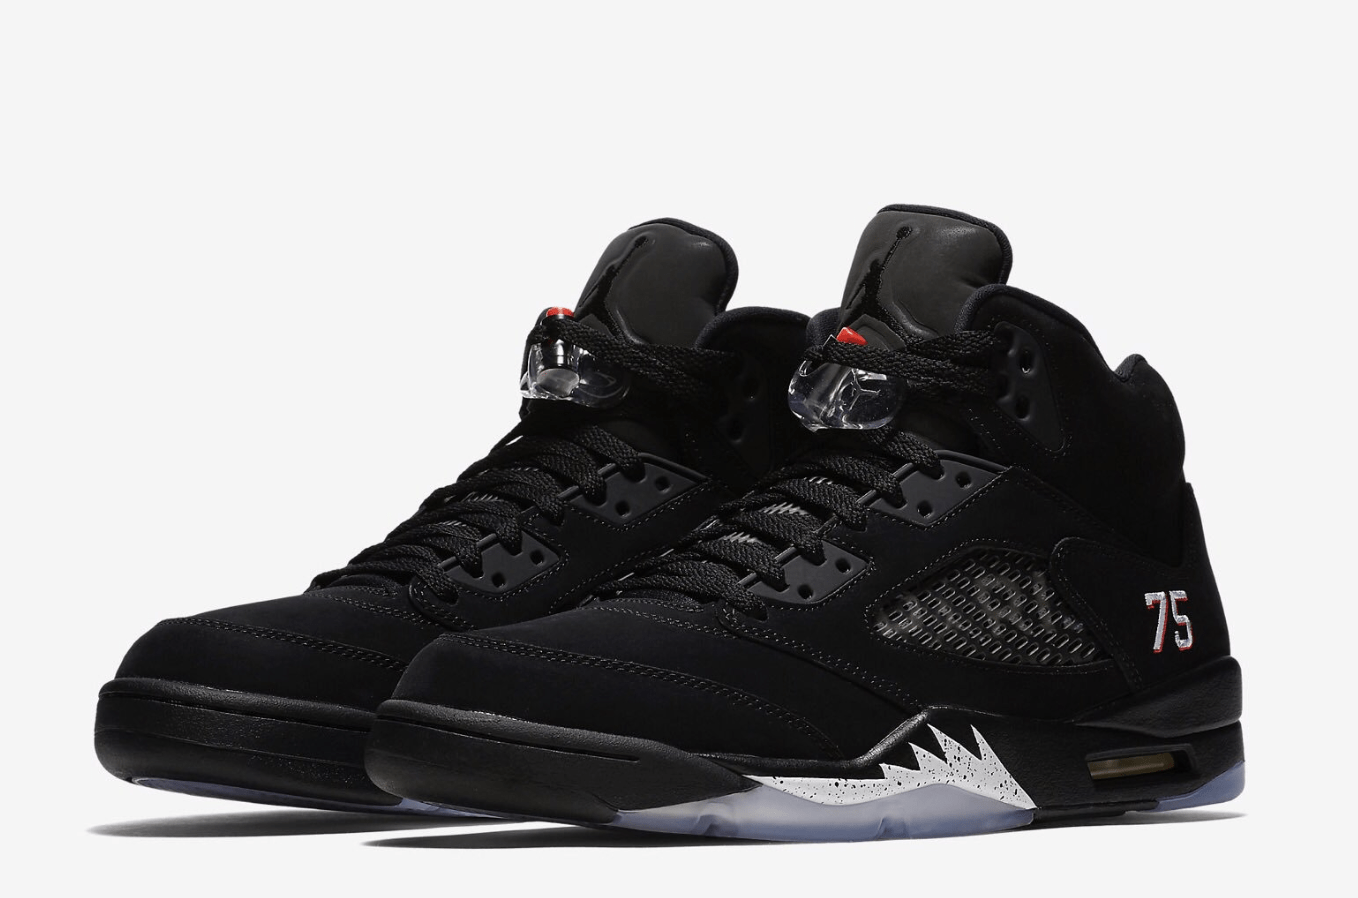 4e4b314eb81c The Air Jordan 5 is one of the most popular silhouettes from Jordan Brand.  With so many recent retros of other fan-favorite Jordans